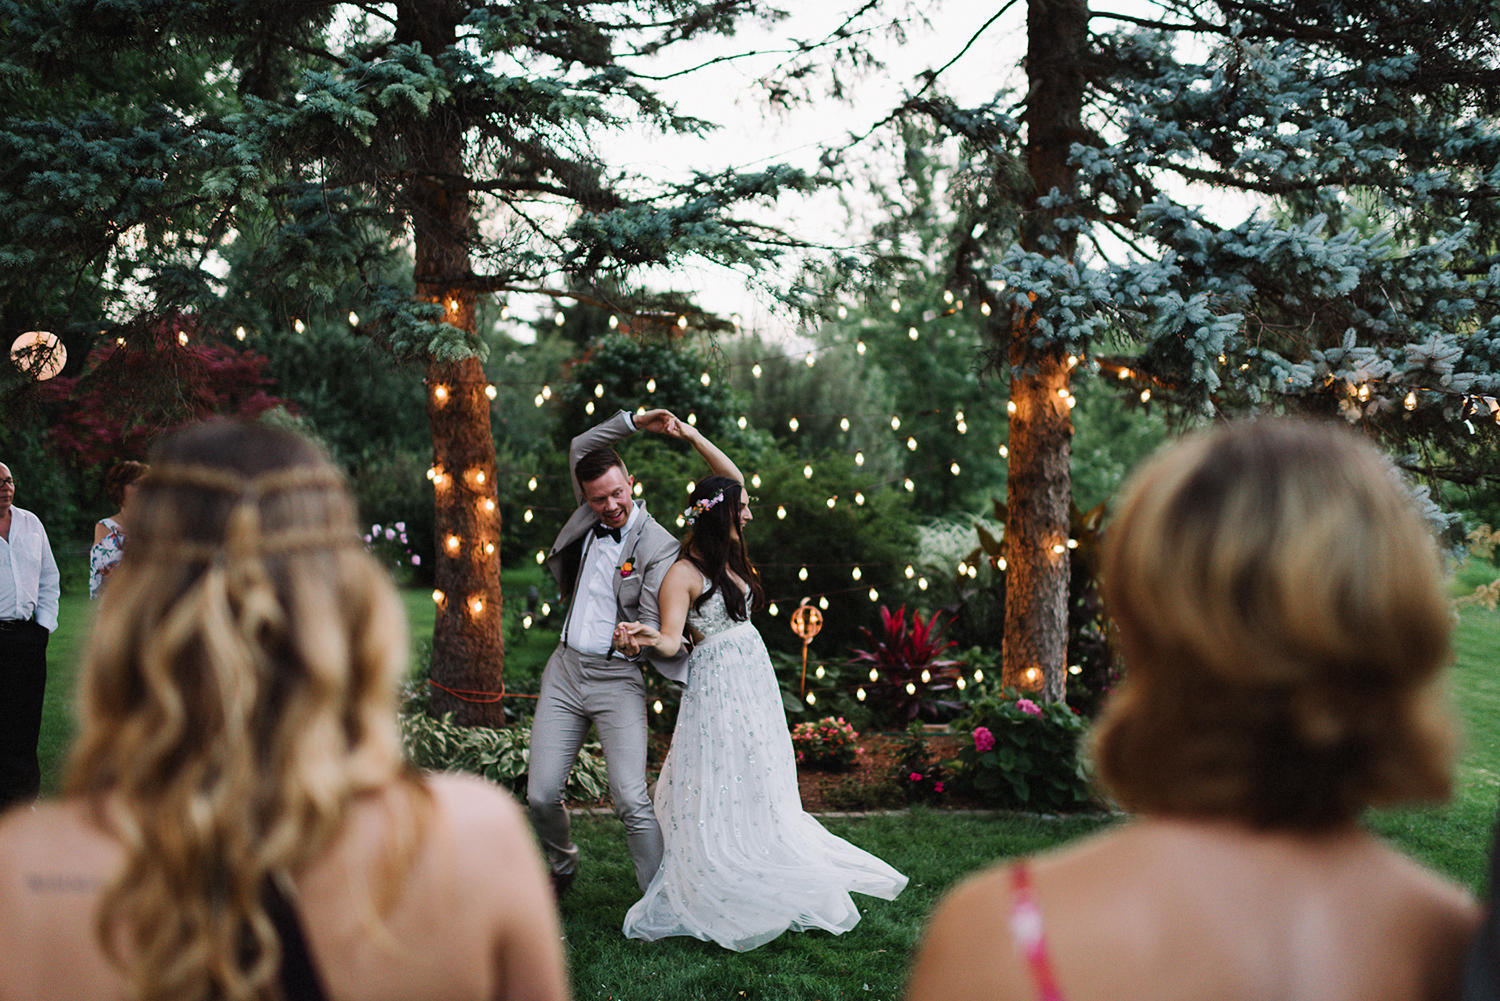 Backyard-toronto-film-photographer-ryanne-hollies-photography-diy-string-lights-and-lanterns-reception-first-dance-documentary-fun-candid-dancing.jpg